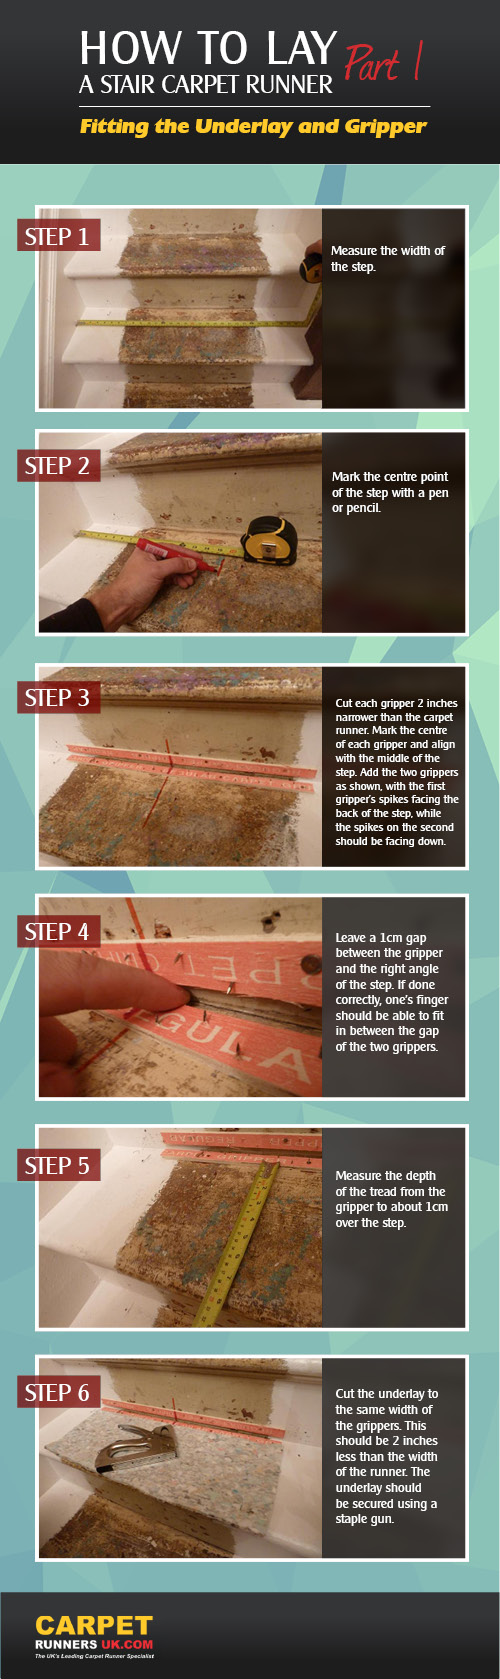 How To Lay A Stair Carpetrunner Infographic Part 1 Of The Guide Fitting The Underlay Gr Stair Runner Carpet How To Lay Carpet Carpet Stairs